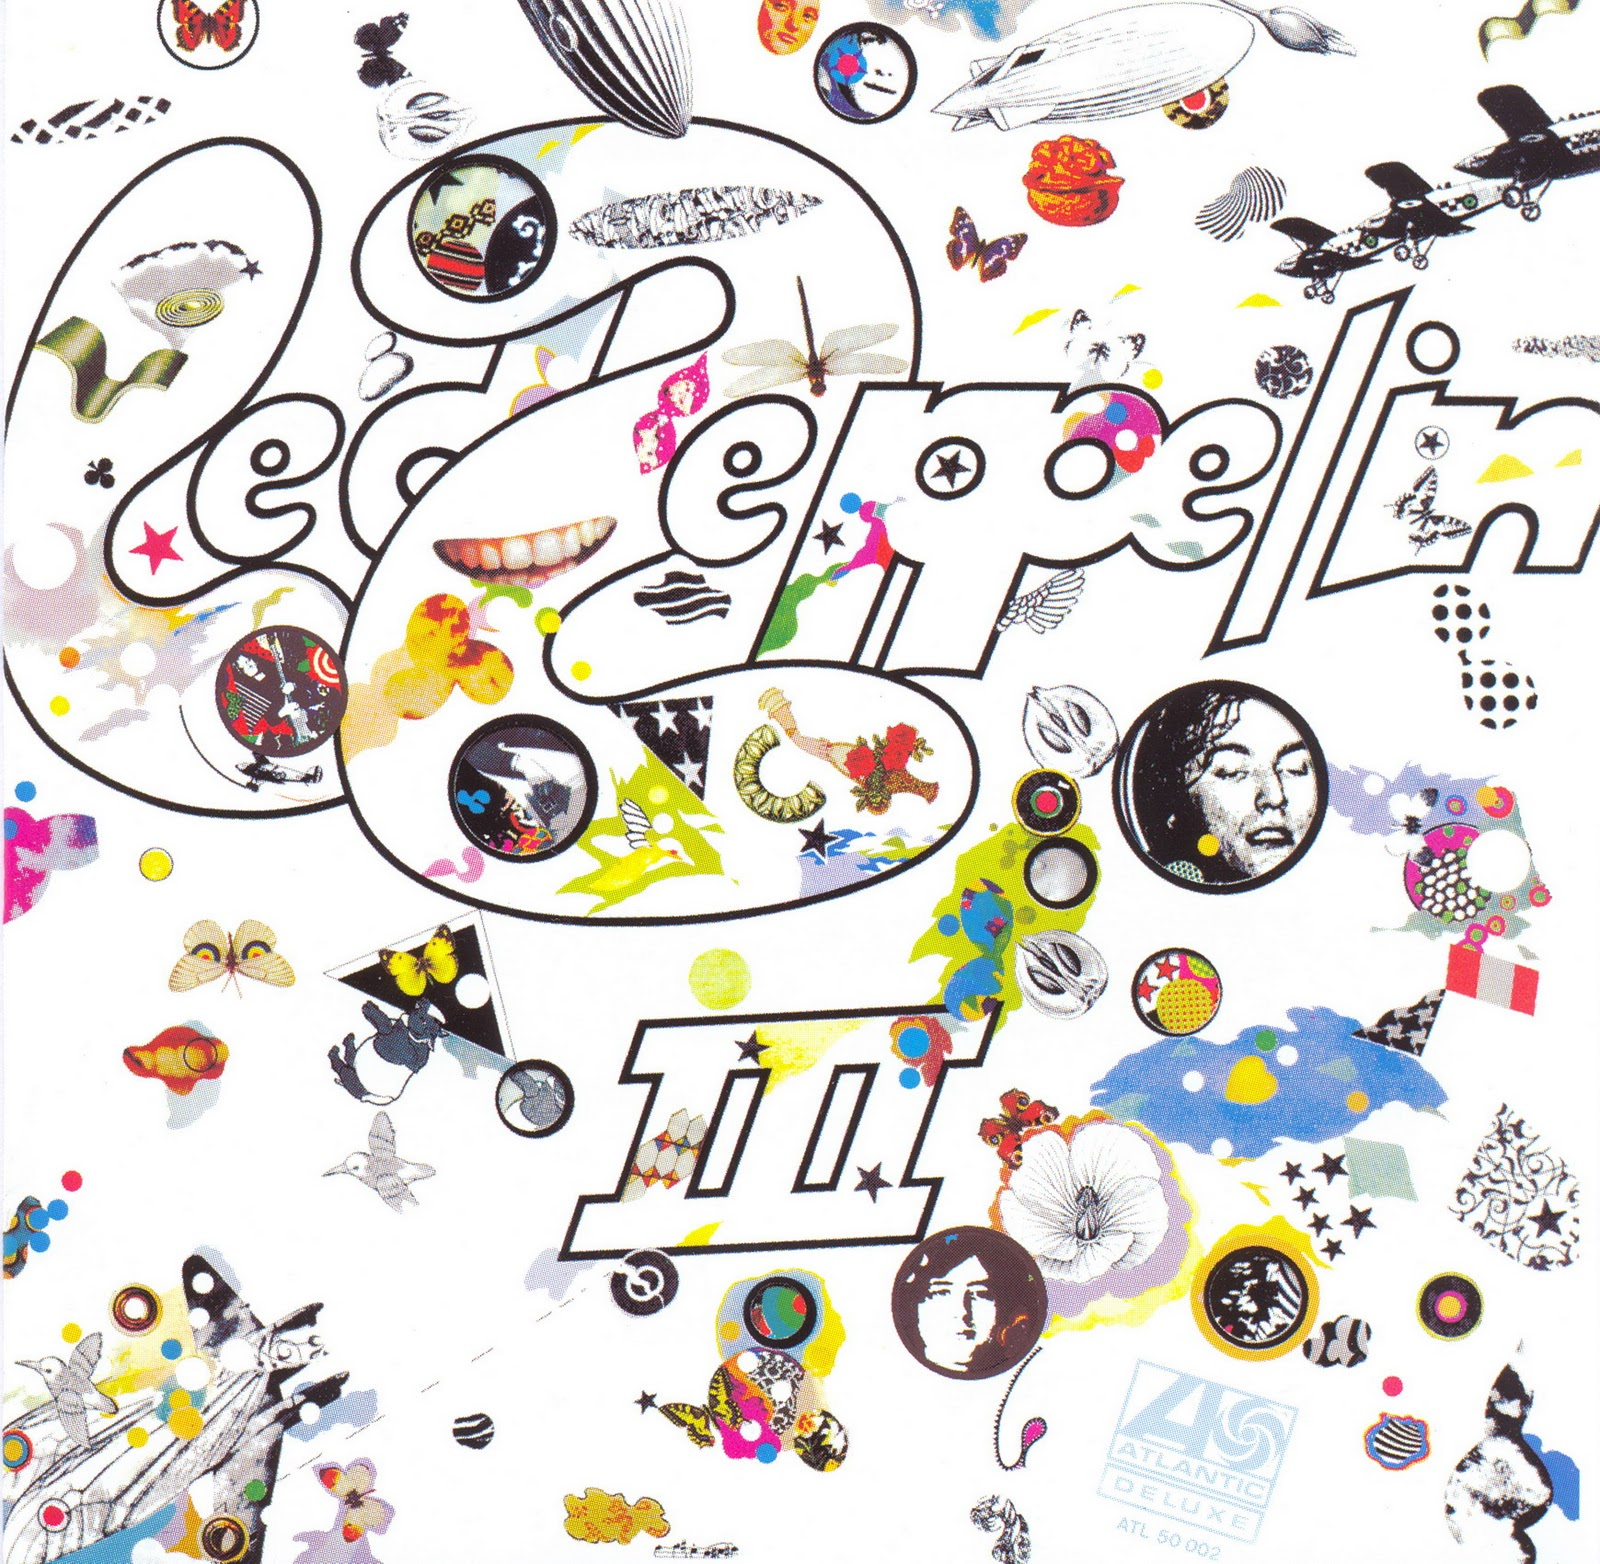 Led Zeppelin - III - 1970